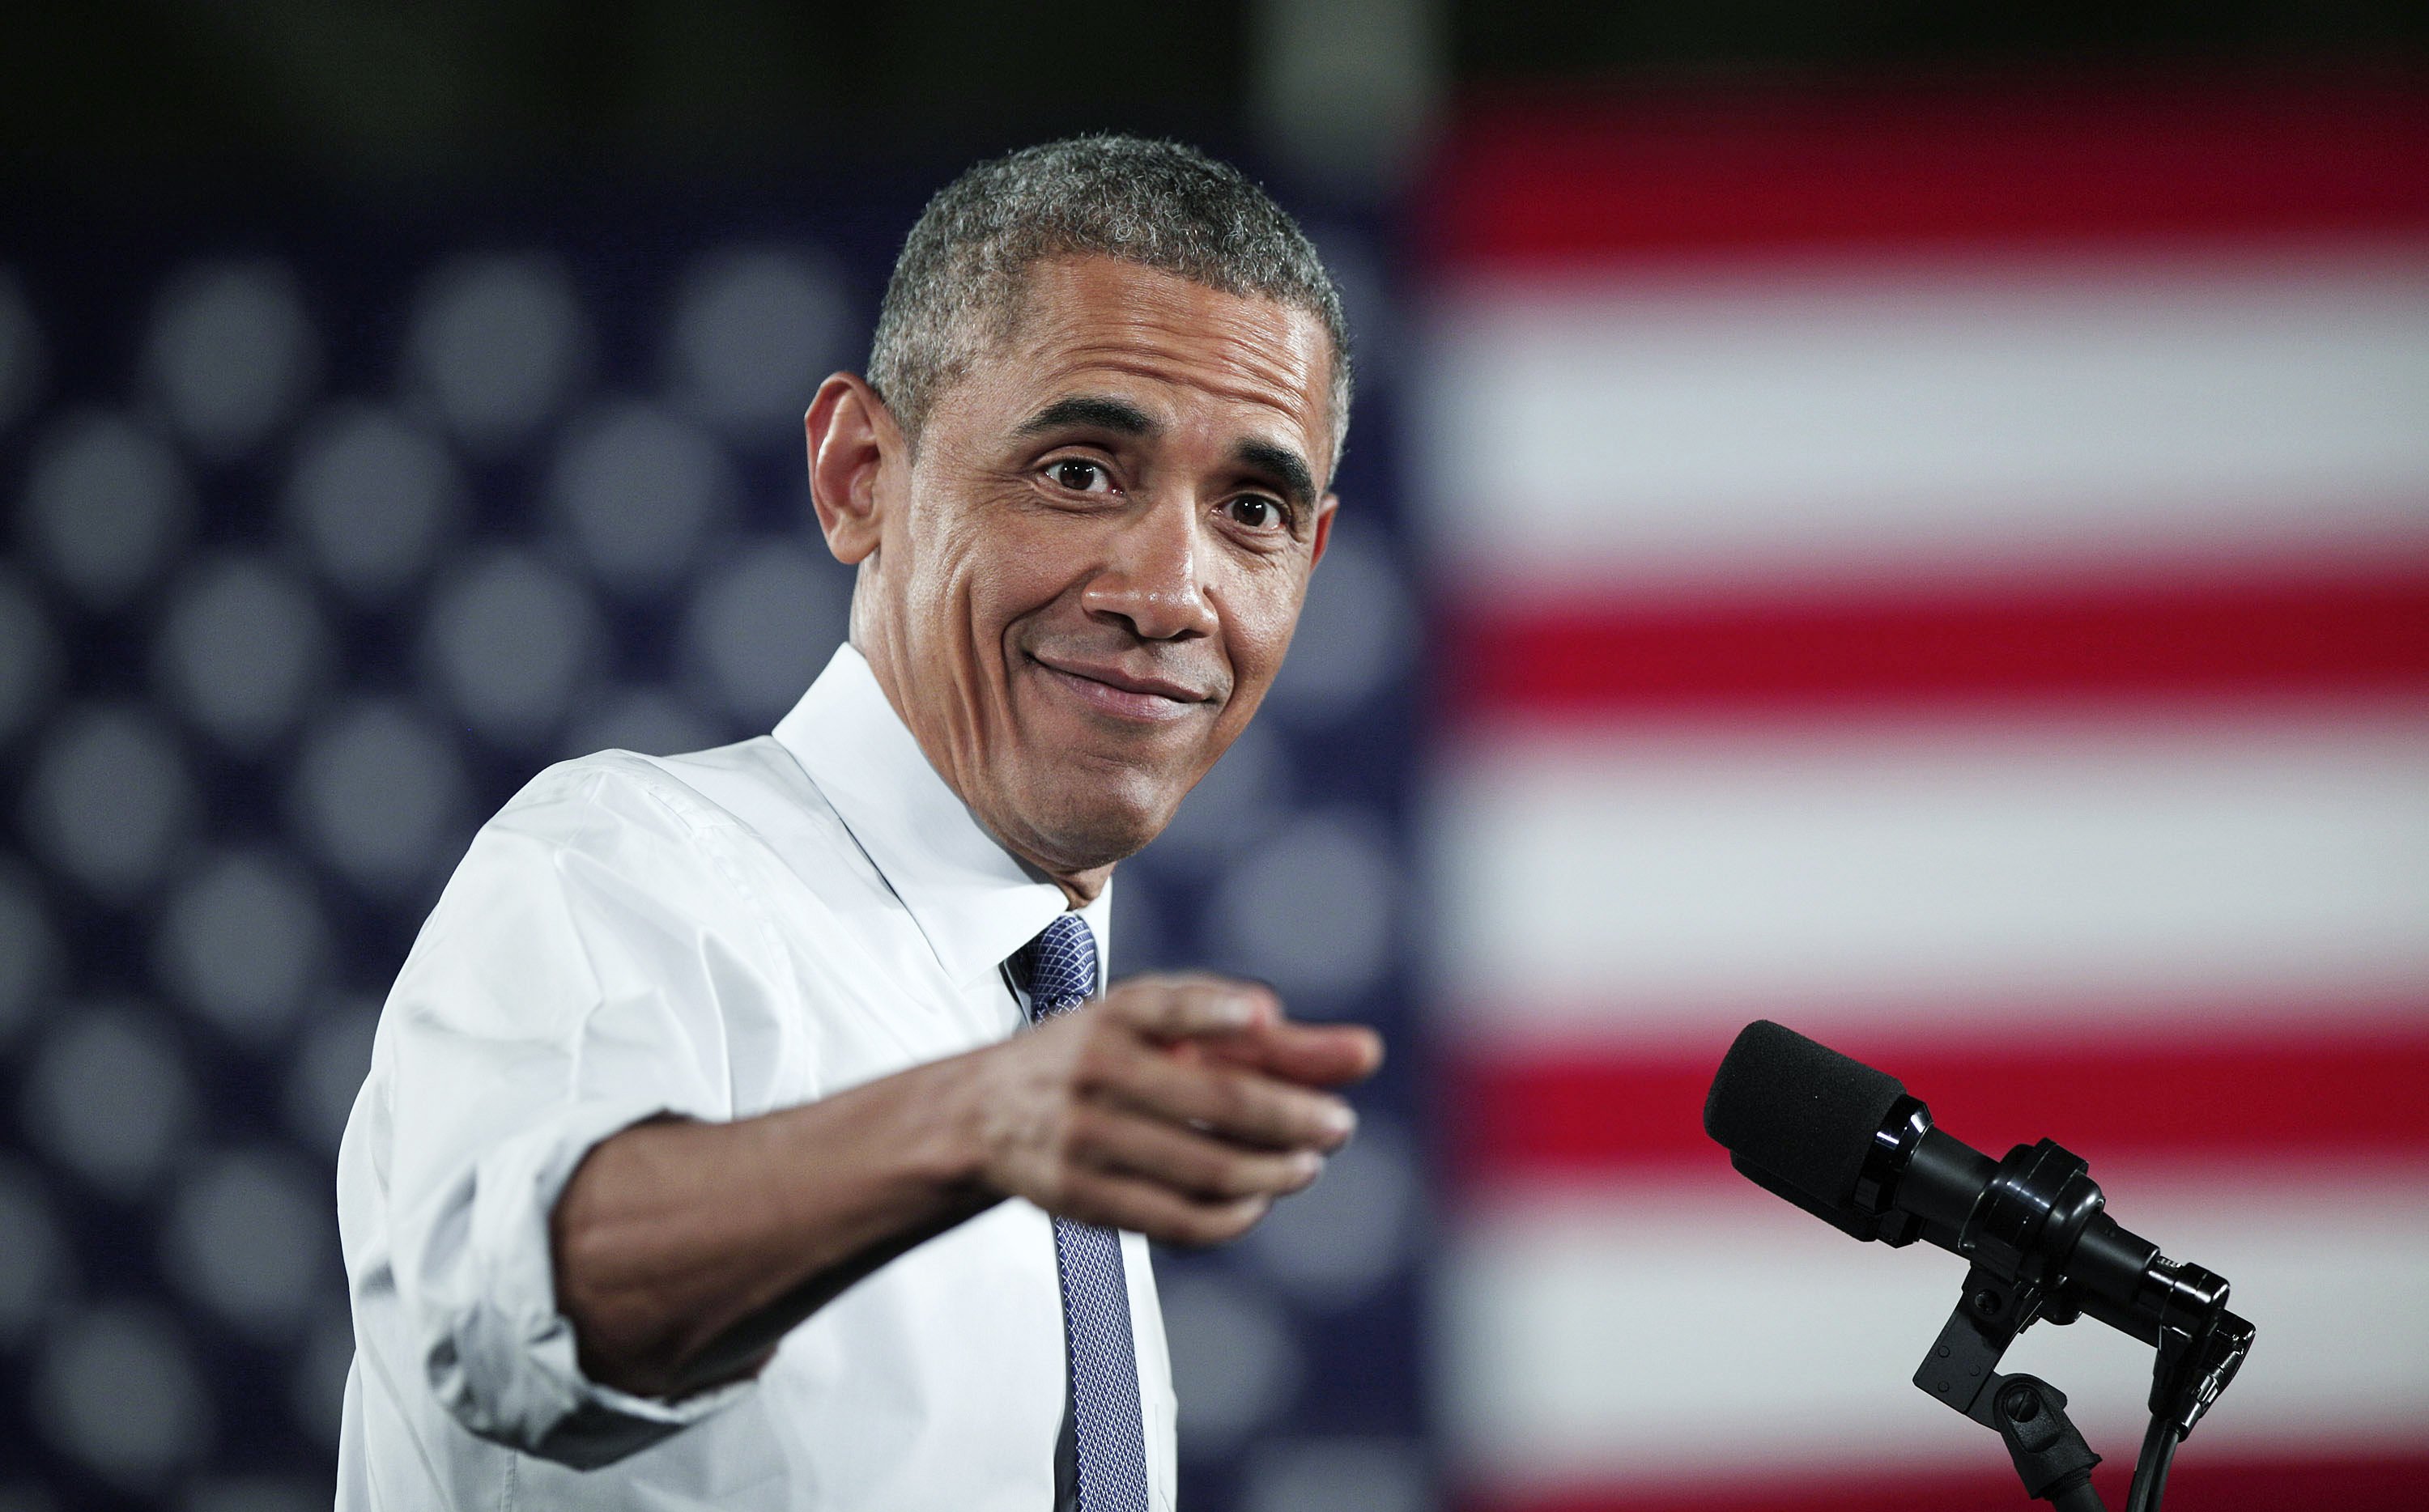 WAYNE, MI - JANUARY 7: U.S. President Barack Obama speaks at the Ford Michigan Assembly Plant January 7, 2015 in Wayne, Michigan. Obama spoke about the American automotive and manufacturing sector during his visit to the Detroit area, the first stop of a scheduled three-day, three city tour inthe lead up to the State of the Union. (Photo by Bill Pugliano/Getty Images)